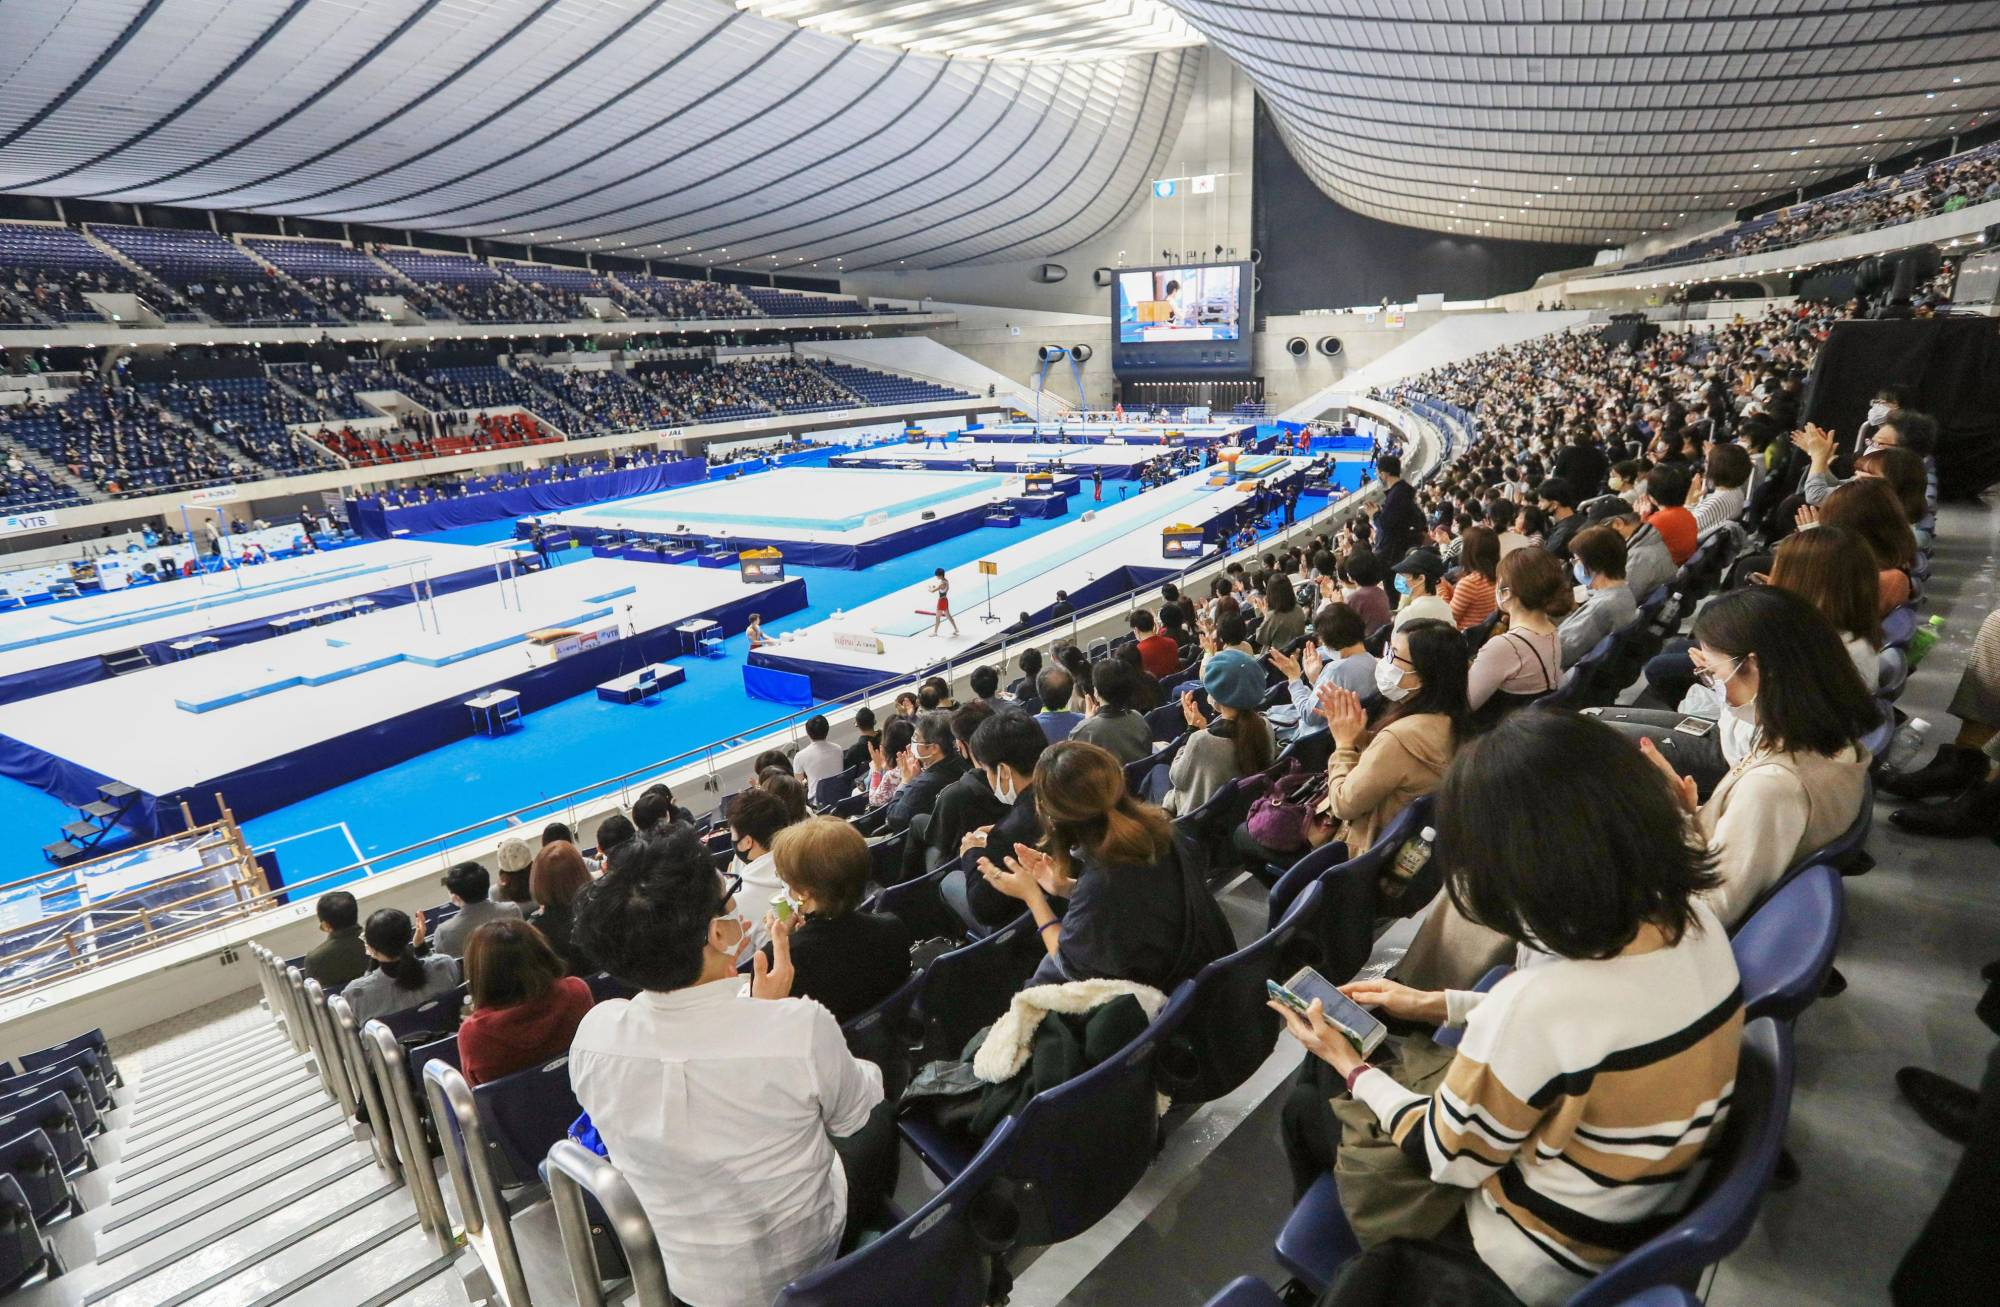 Spectators watch the gymnastics competition in Tokyo on Sunday. | KYODO